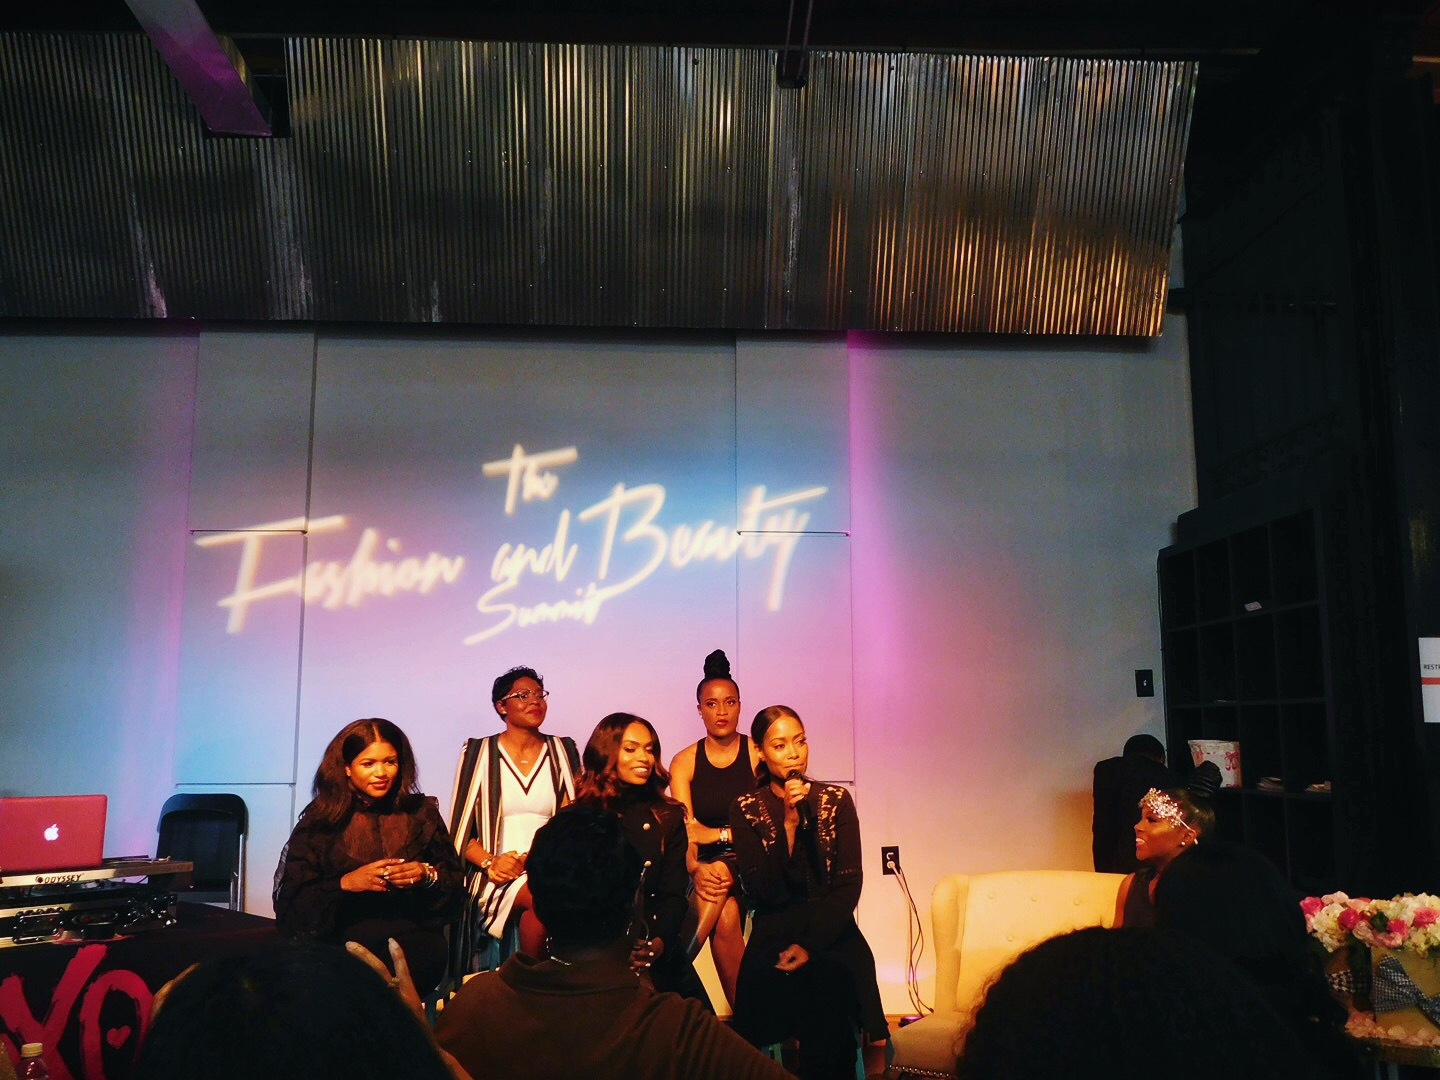 Industry Style Panelists (from left to right): Kelly Babara-Ford Kirkwood, C'Erra E., Kristina Bowman-Smith, Terry-Ann Phillips, Latrice Delgado-Macon.